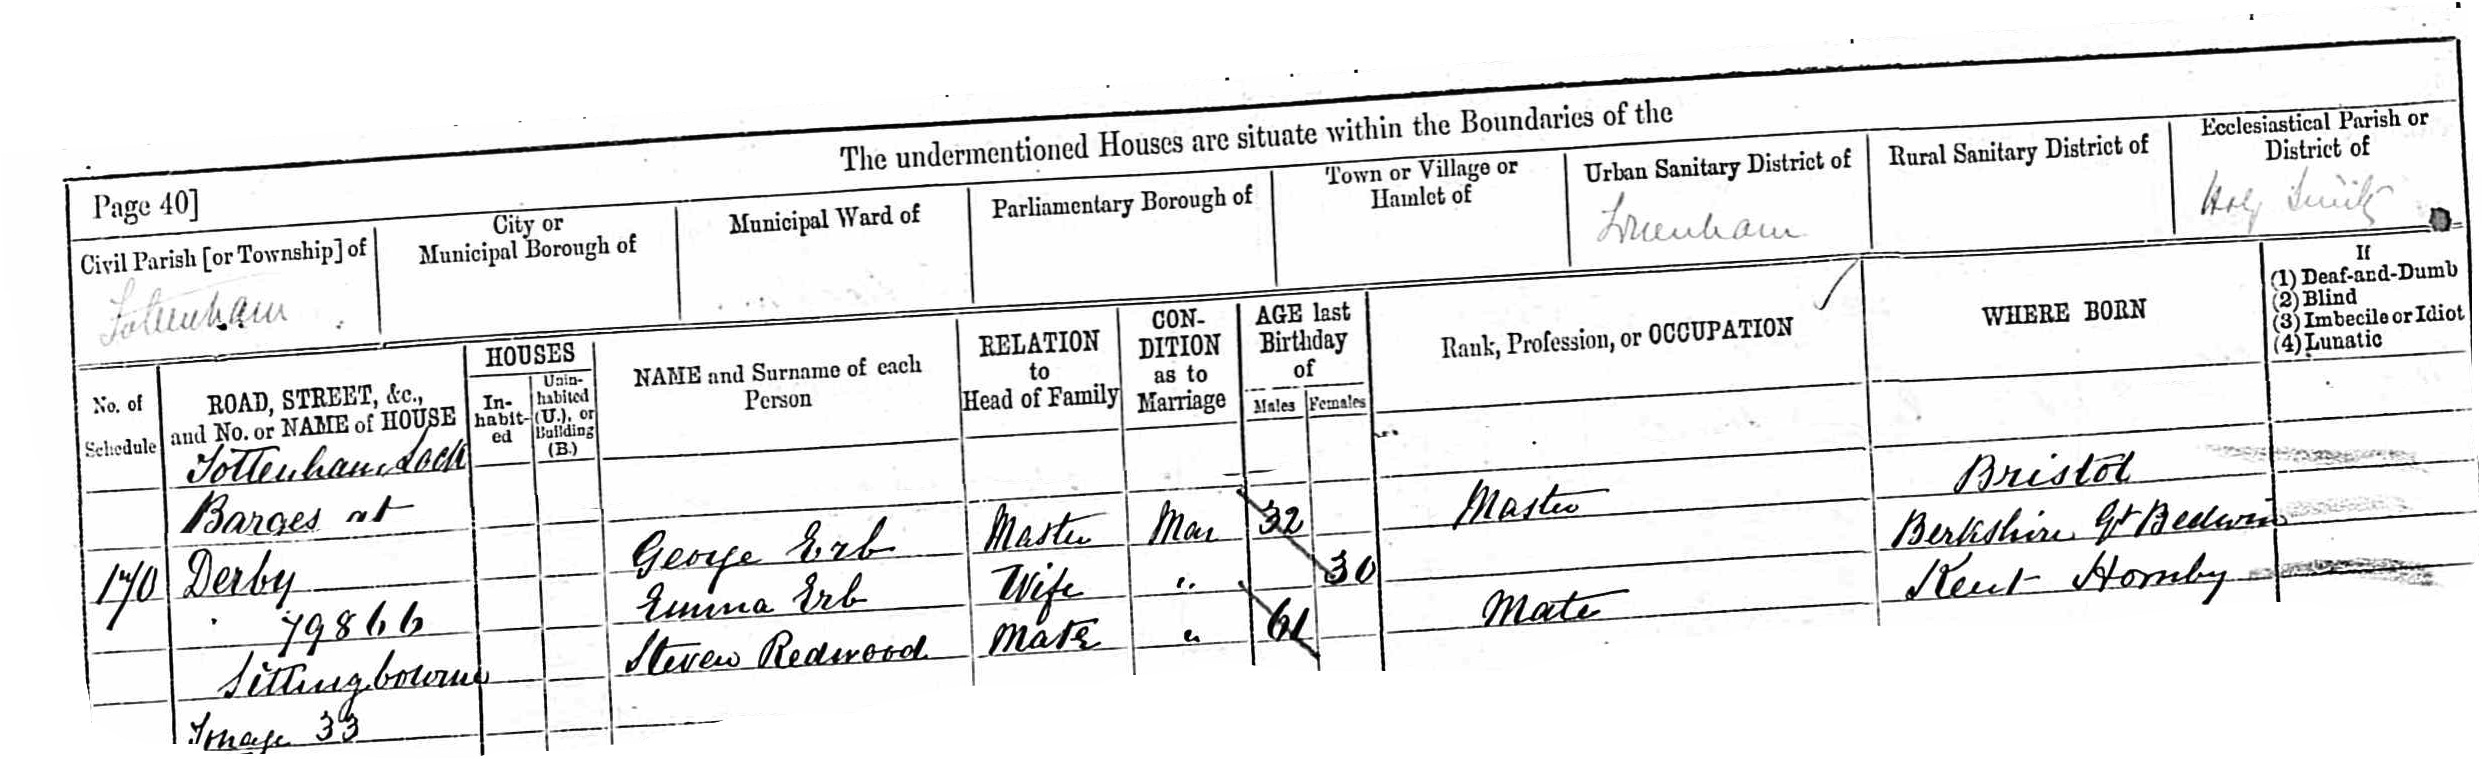 stephen redwood 1881 census